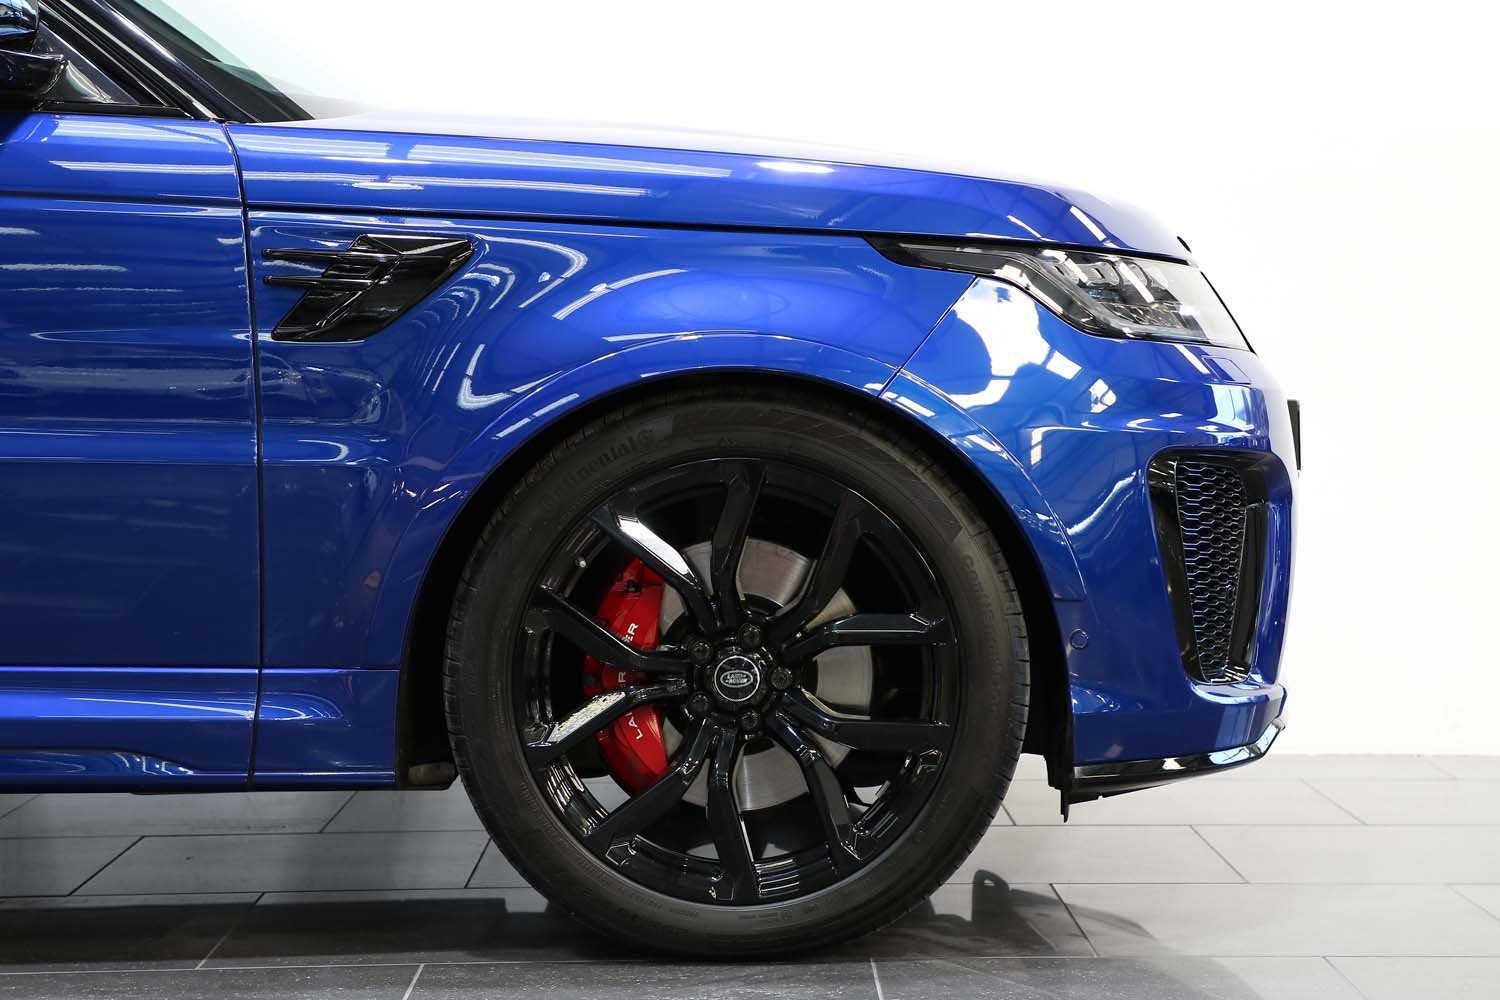 2018 18 18 RANGE ROVER 5.0 V8 SUPERCHARGED SVR AUTO For Sale (picture 4 of 6)